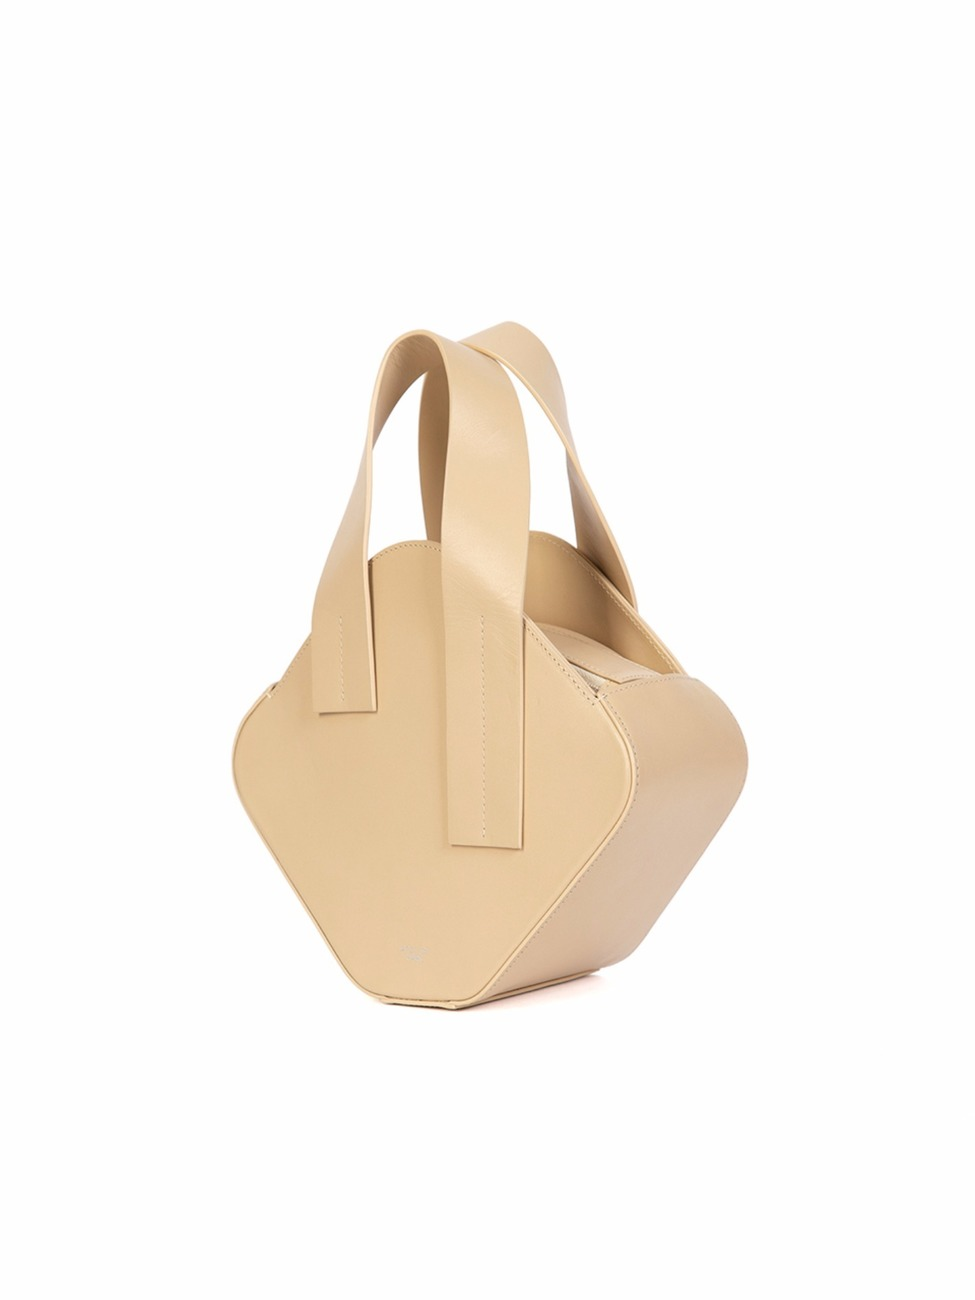 MONIC BAG _ NUDE BEIGE